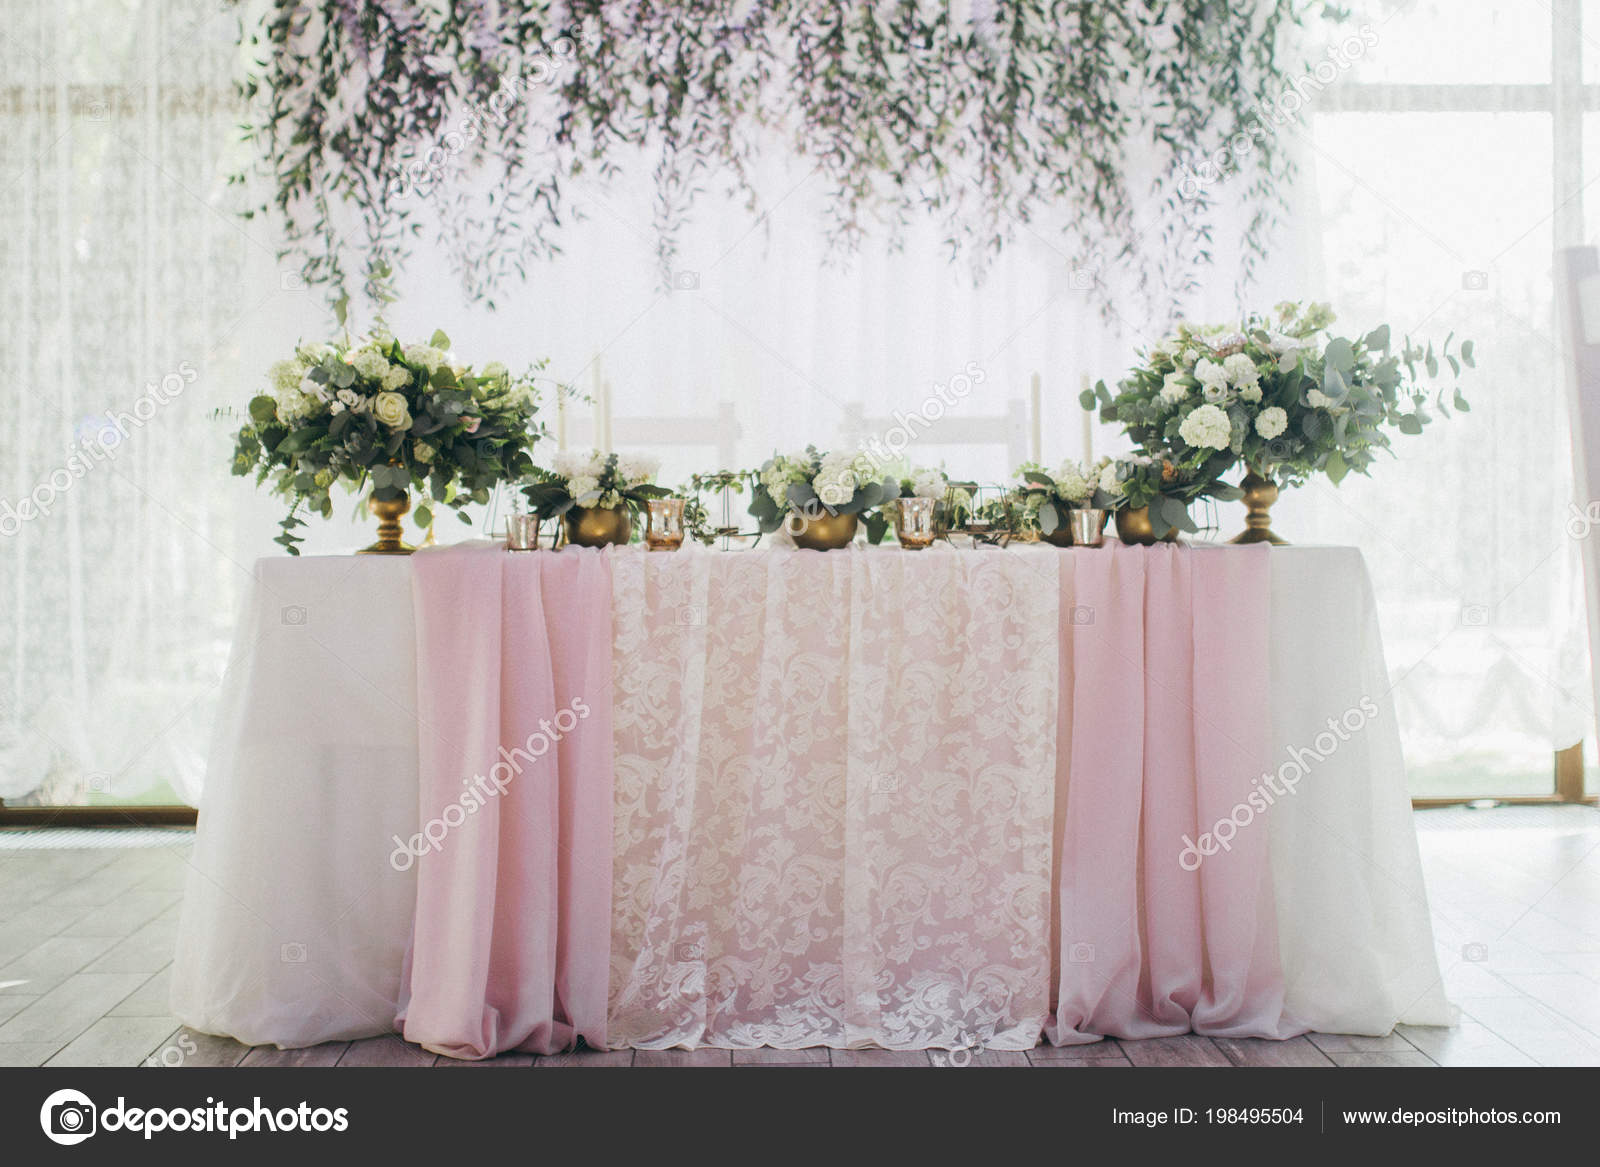 Beautiful Wedding Day Table Decoration Decor Stock Photo